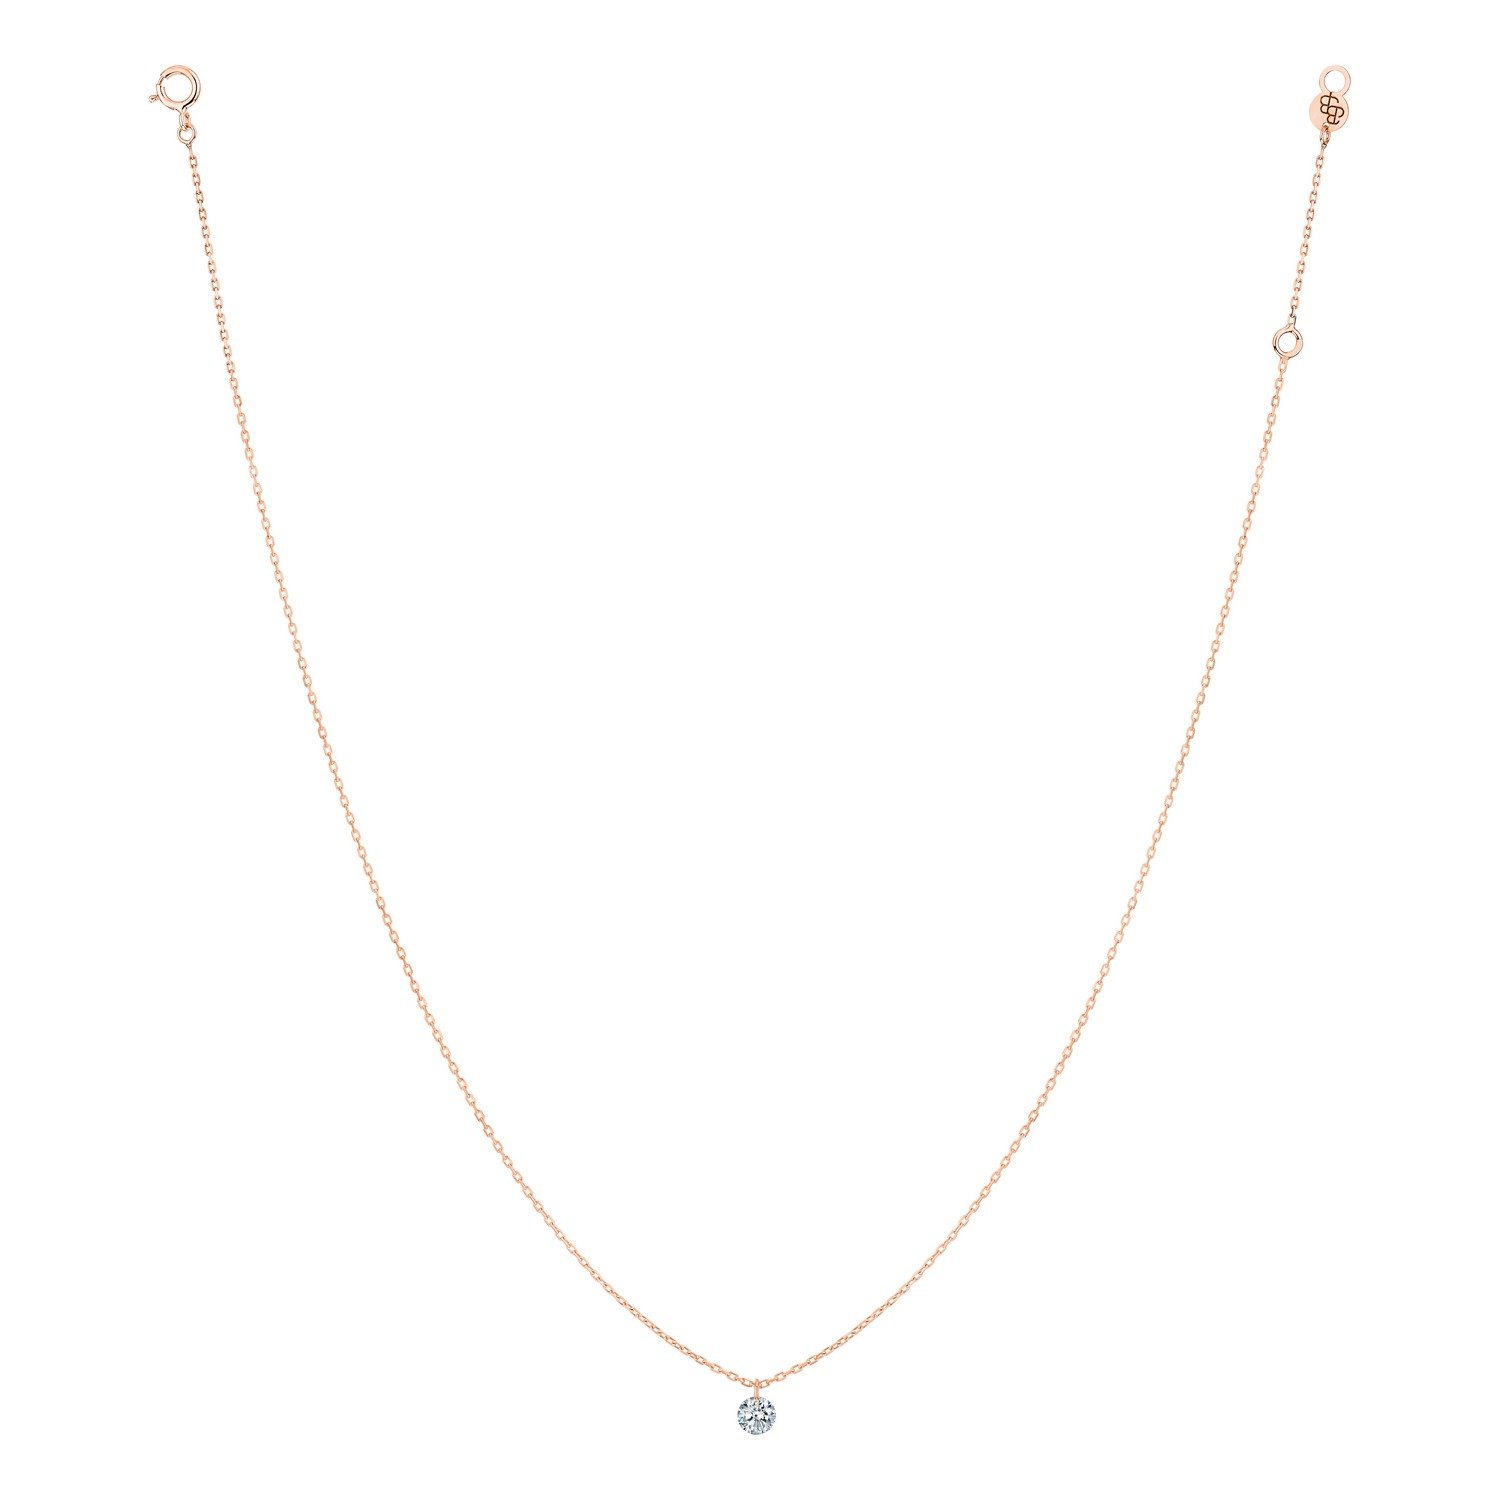 Collier LA BRUNE & LA BLONDE 360° en or rose et diamant de 0.07ct